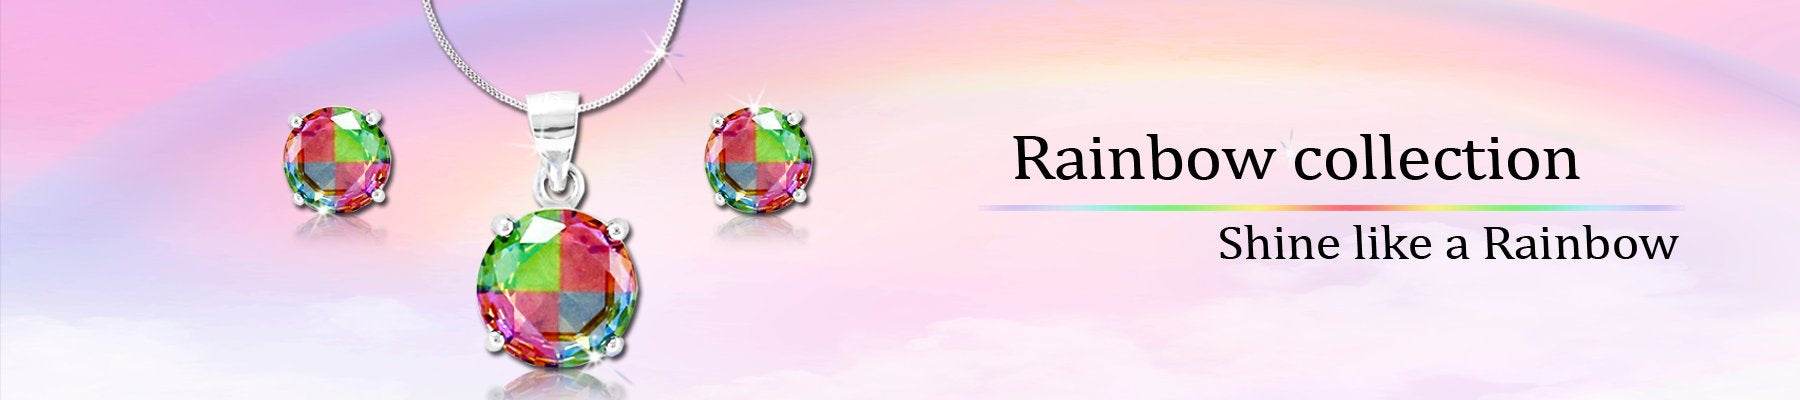 Taraash Sterling Silver Earrings Offer